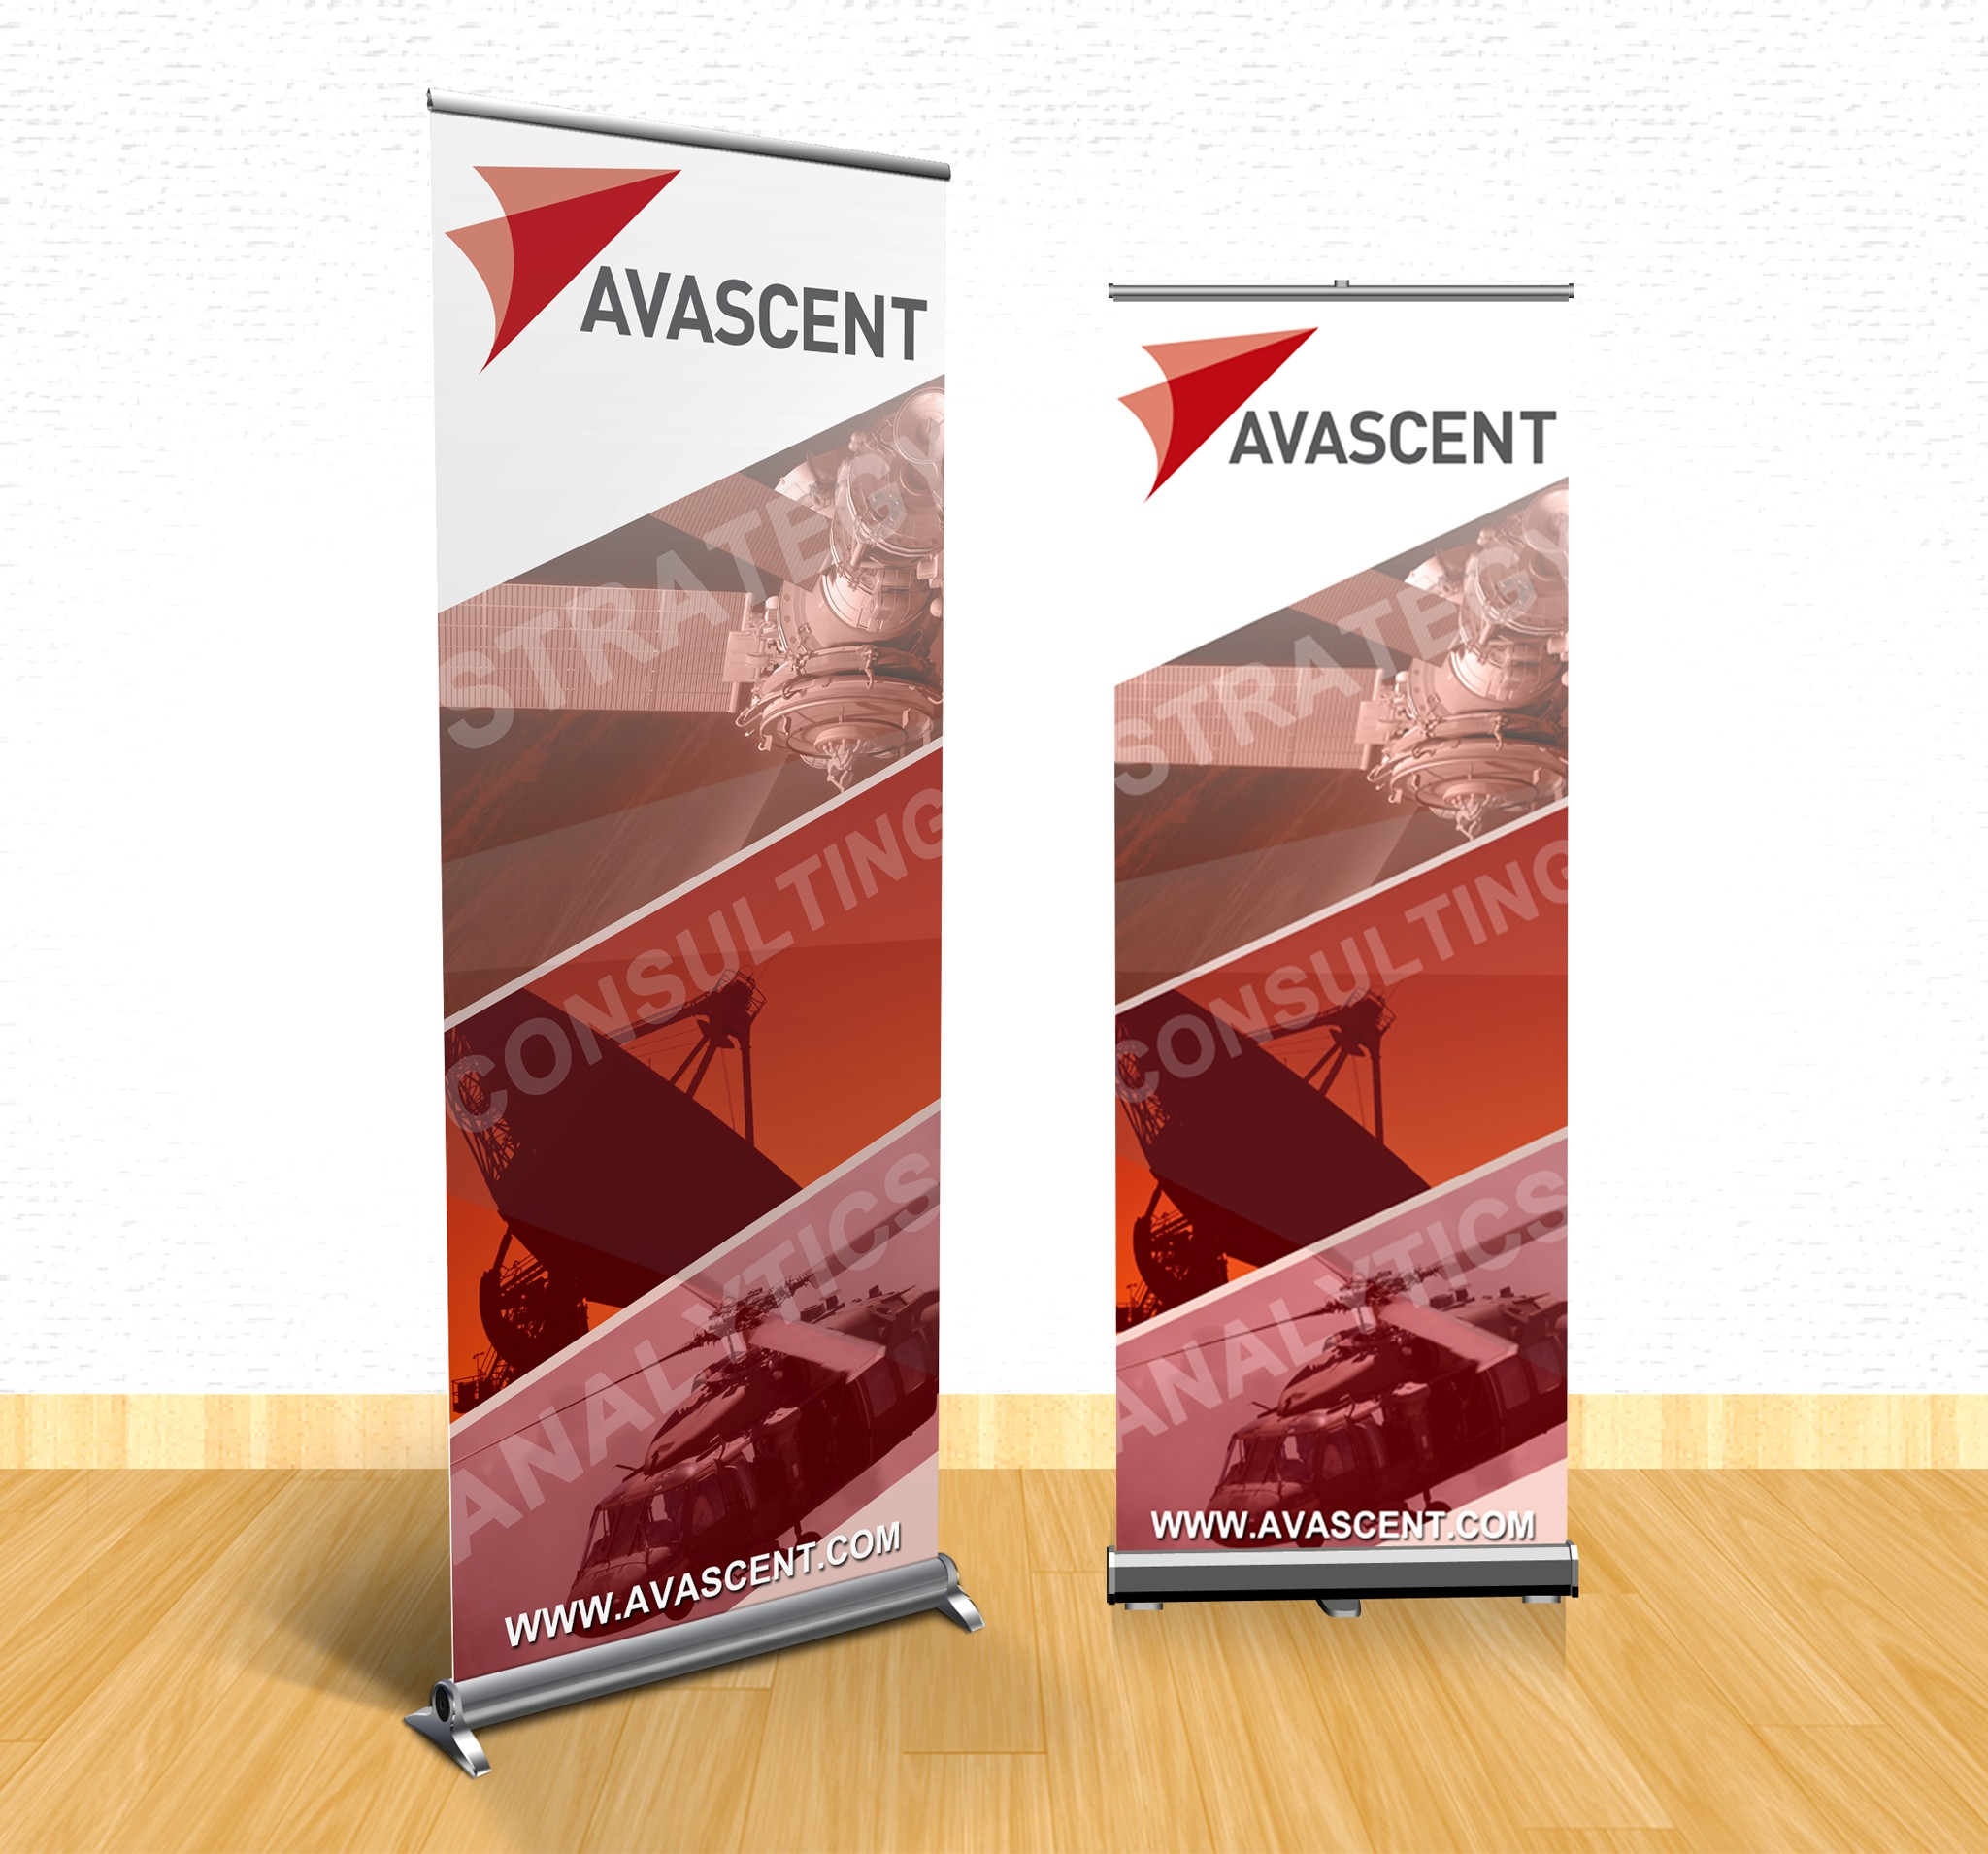 Create a clean, modern trade show banner for an defense & aerospace consulting firm